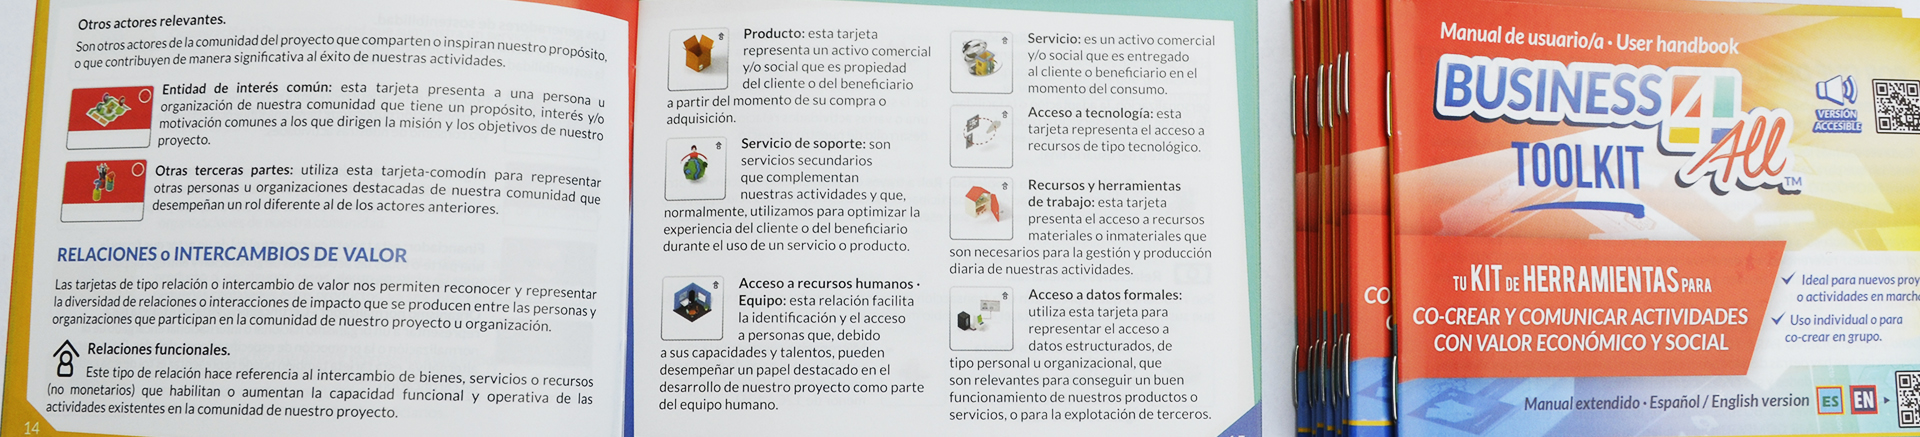 Imagen del manual de instrucciones de Business4ALL TOOLKIT